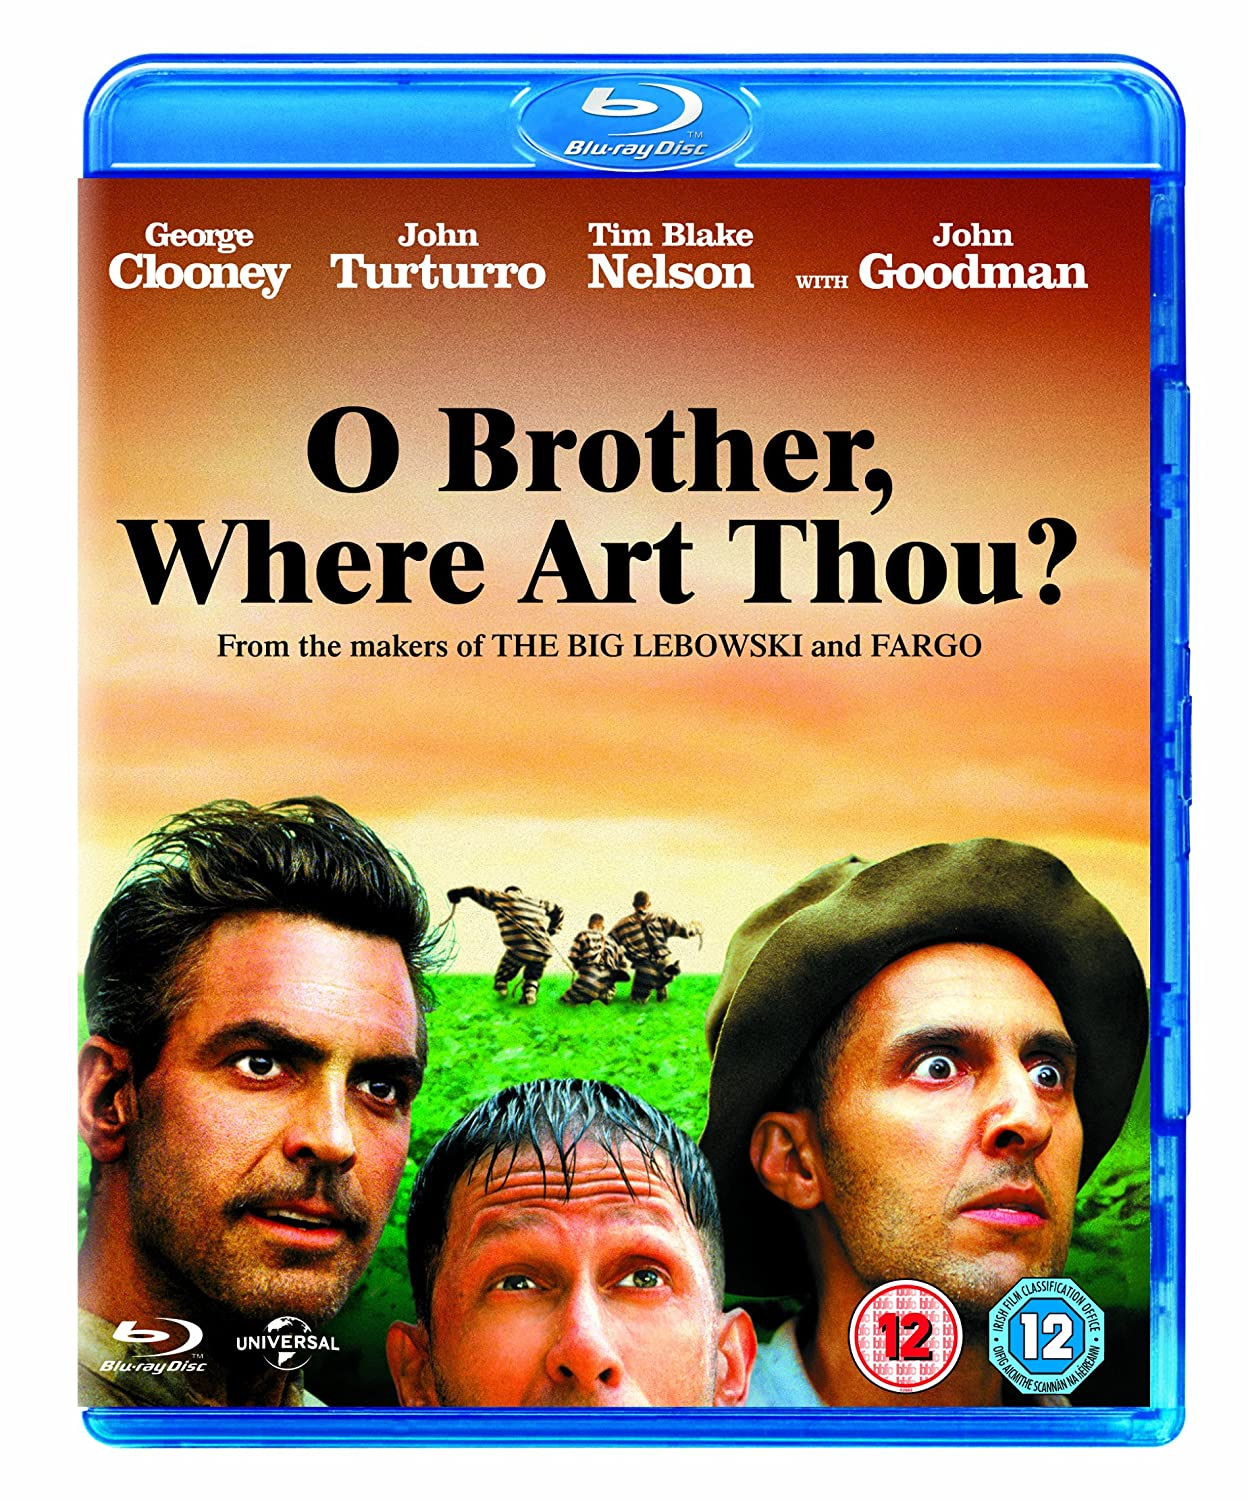 The Cult of Me: Film Review - O Brother, Where Art Thou?